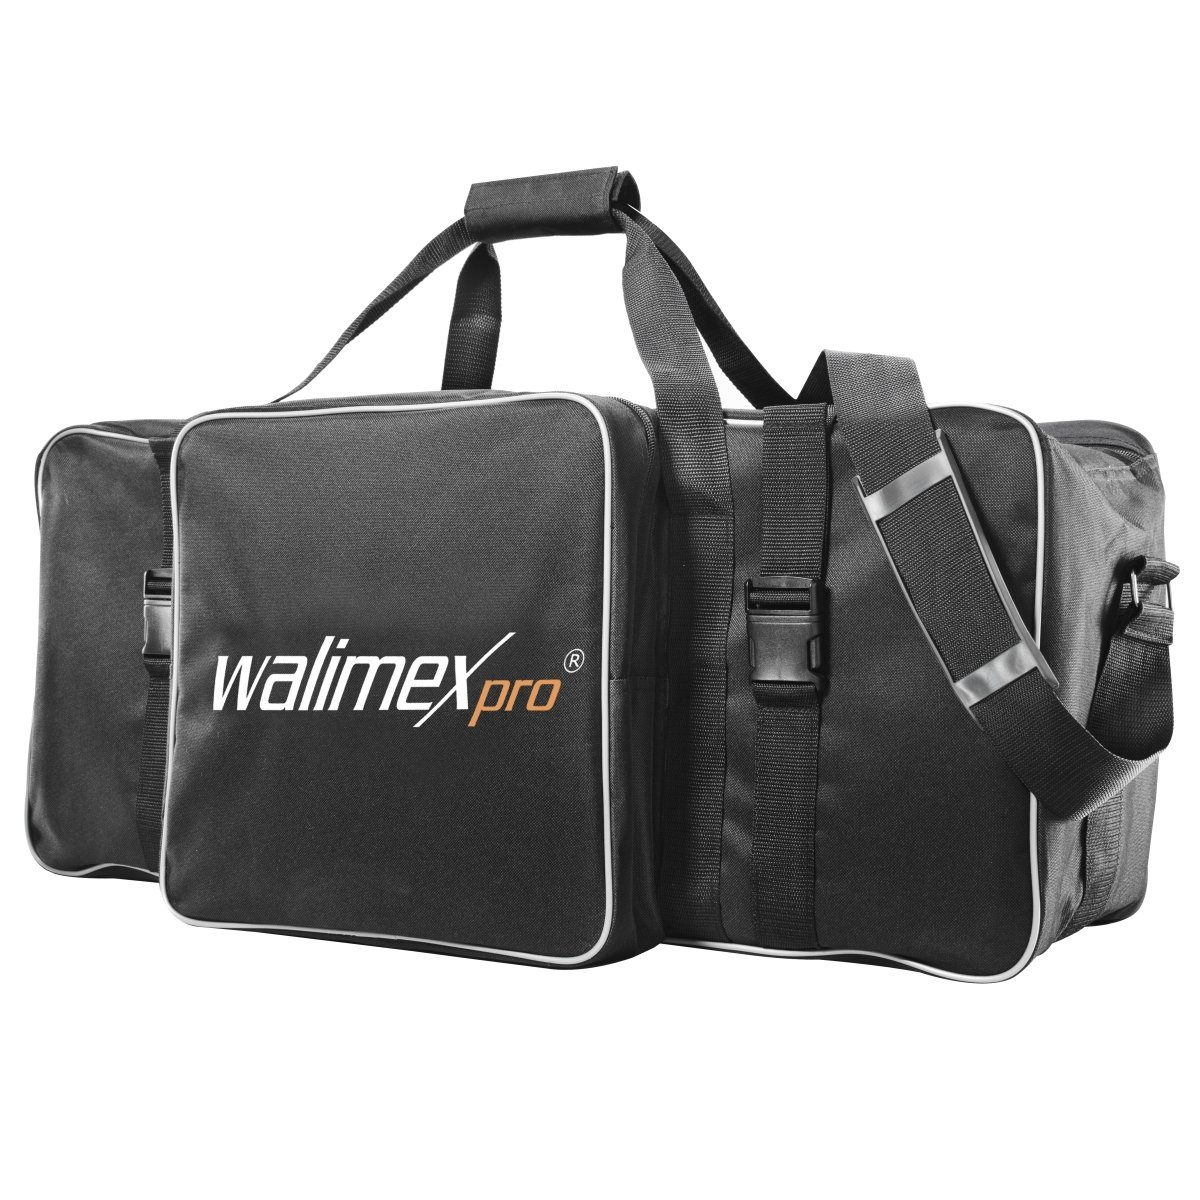 Accessories Bags Trolley Bag Foldable Broncolor Bags For Lighting Equipment Studioexpress